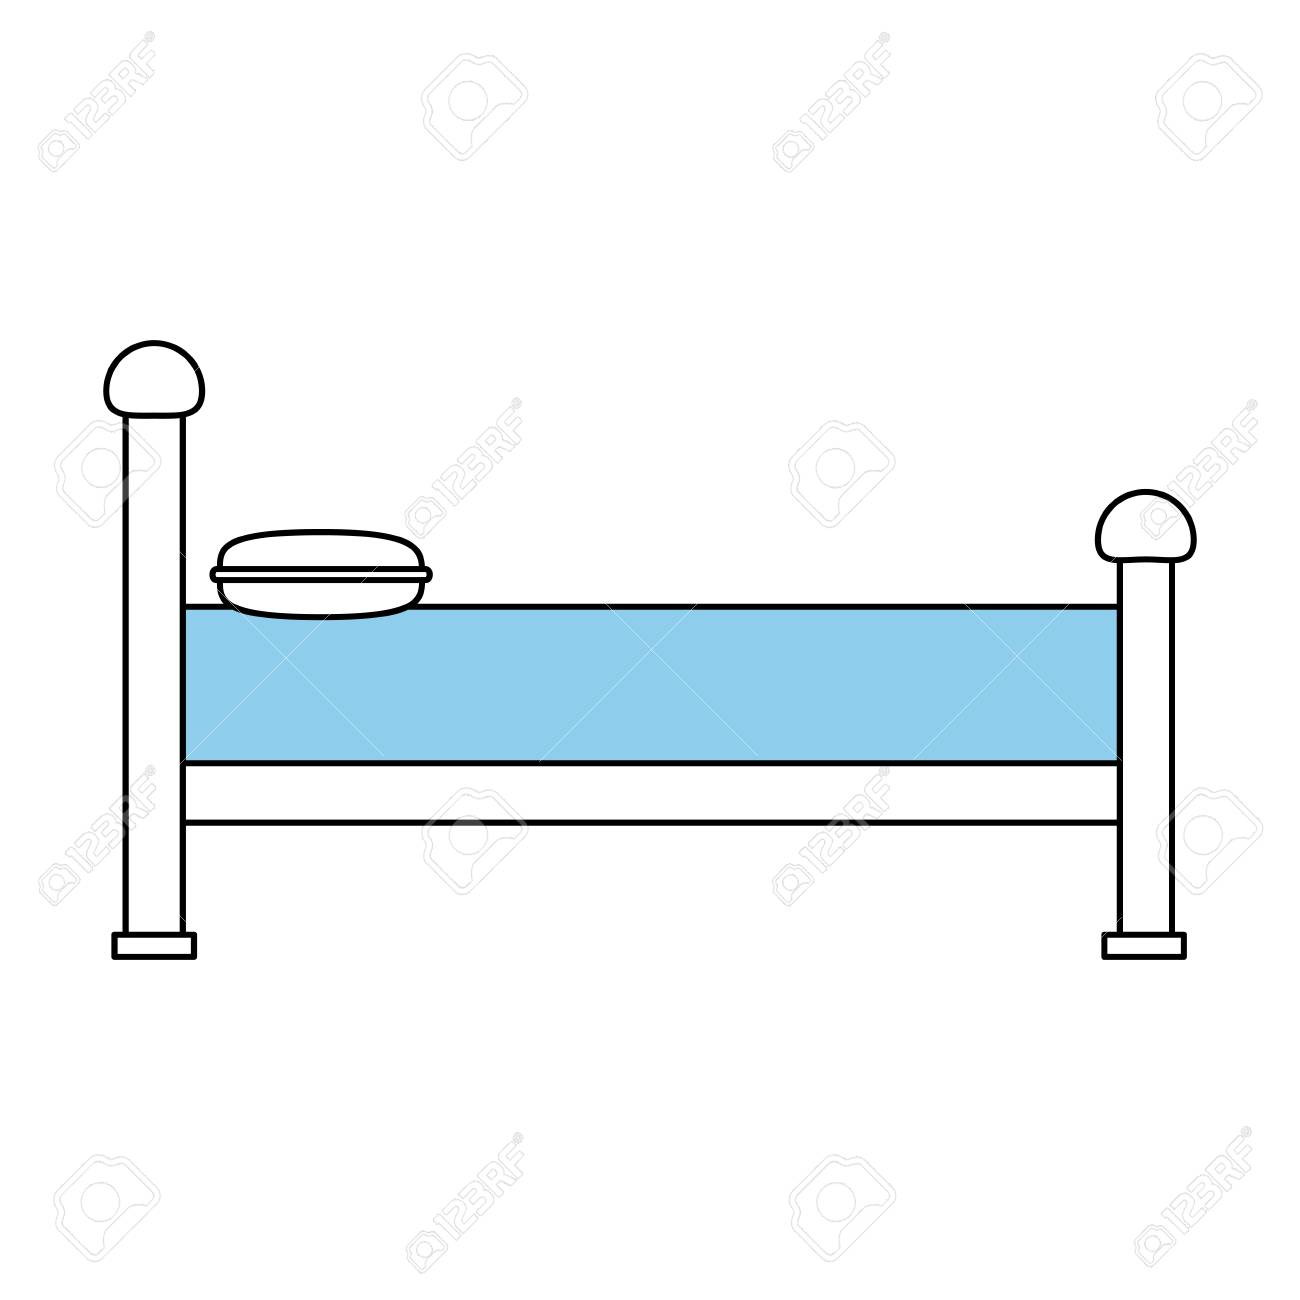 Bed Side View Contemporary Sideview Icon Image Vector Illustration Design Sketch Style Stock